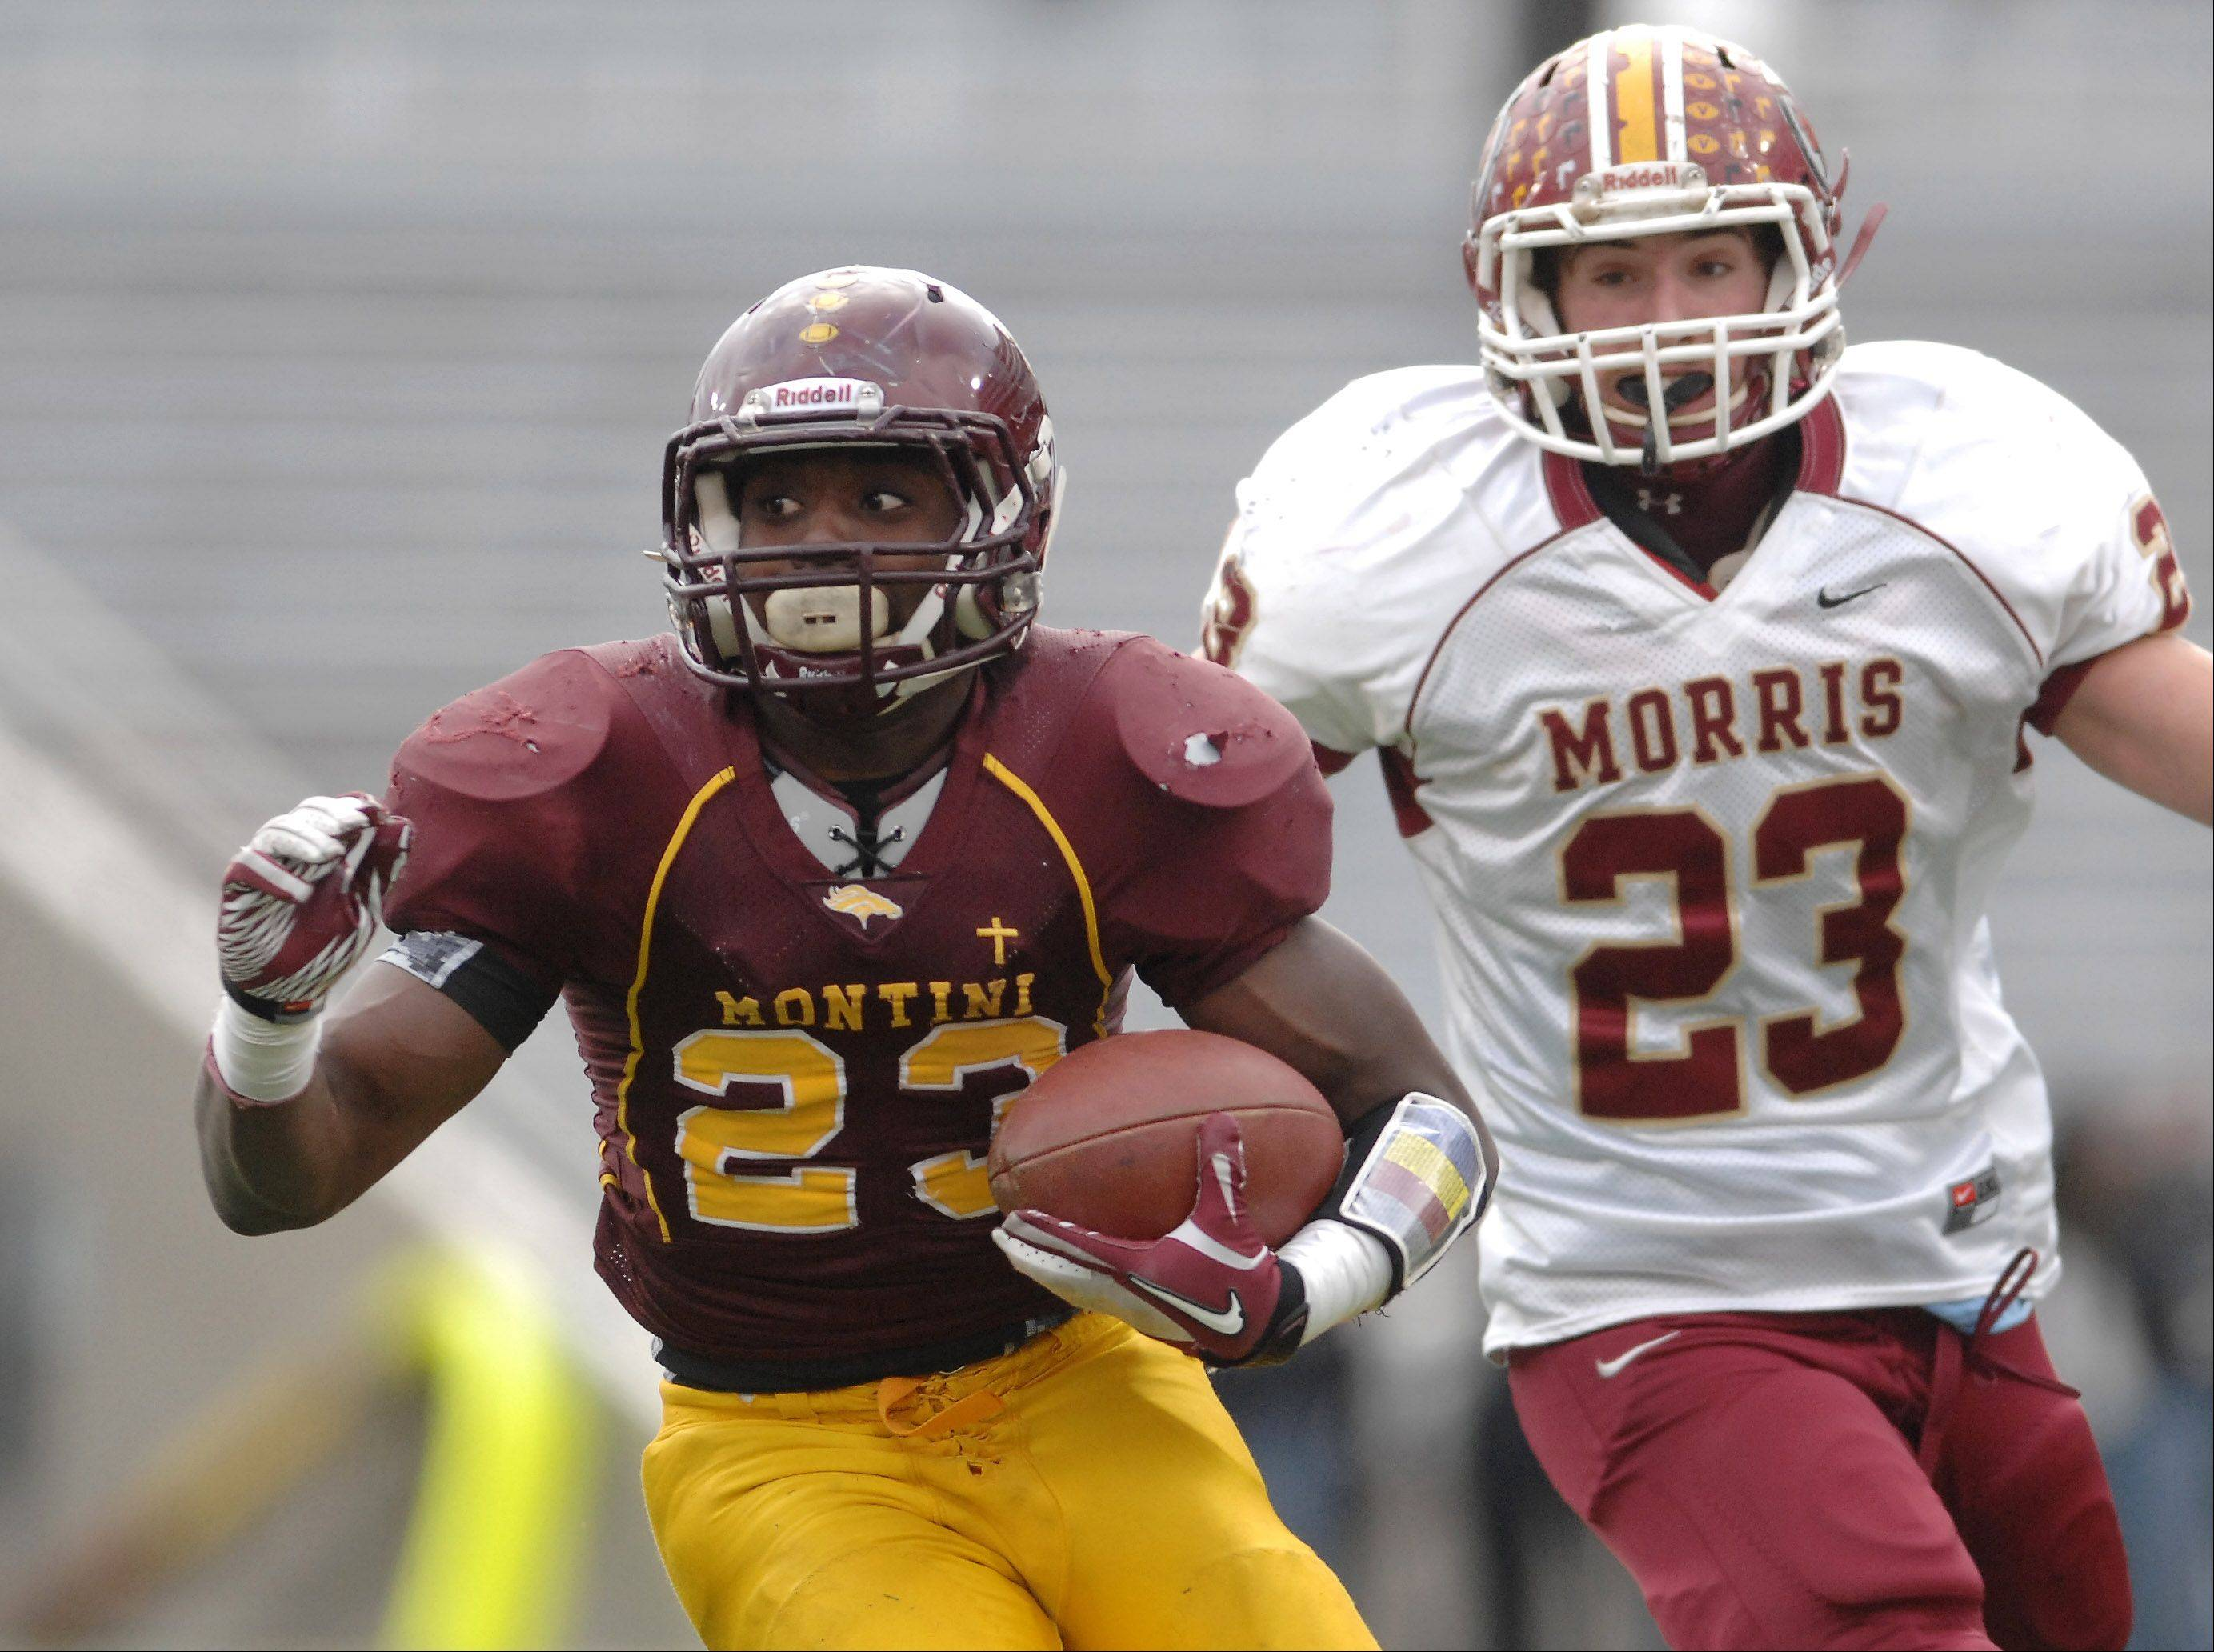 Montini's Dimitri Taylor (23) looks for room to run against Morris during Saturday's Class 5A state title game at Memorial Stadium in Champaign.